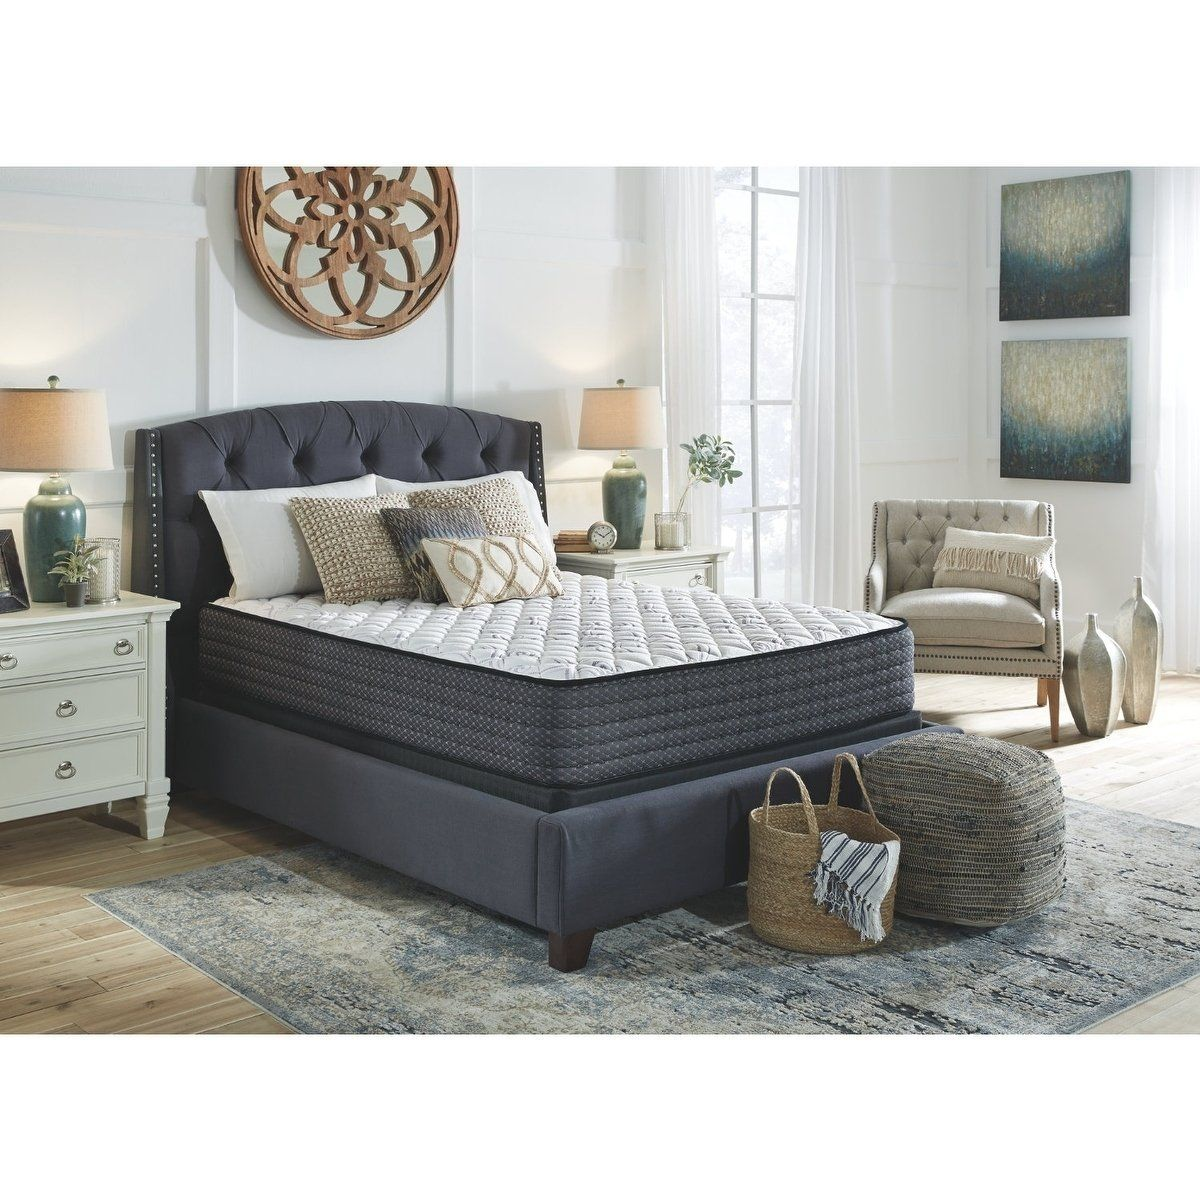 Beautyrest BR800 13-inch Plush Pillow Top Mattress Set - N/A #pillowtopmattress